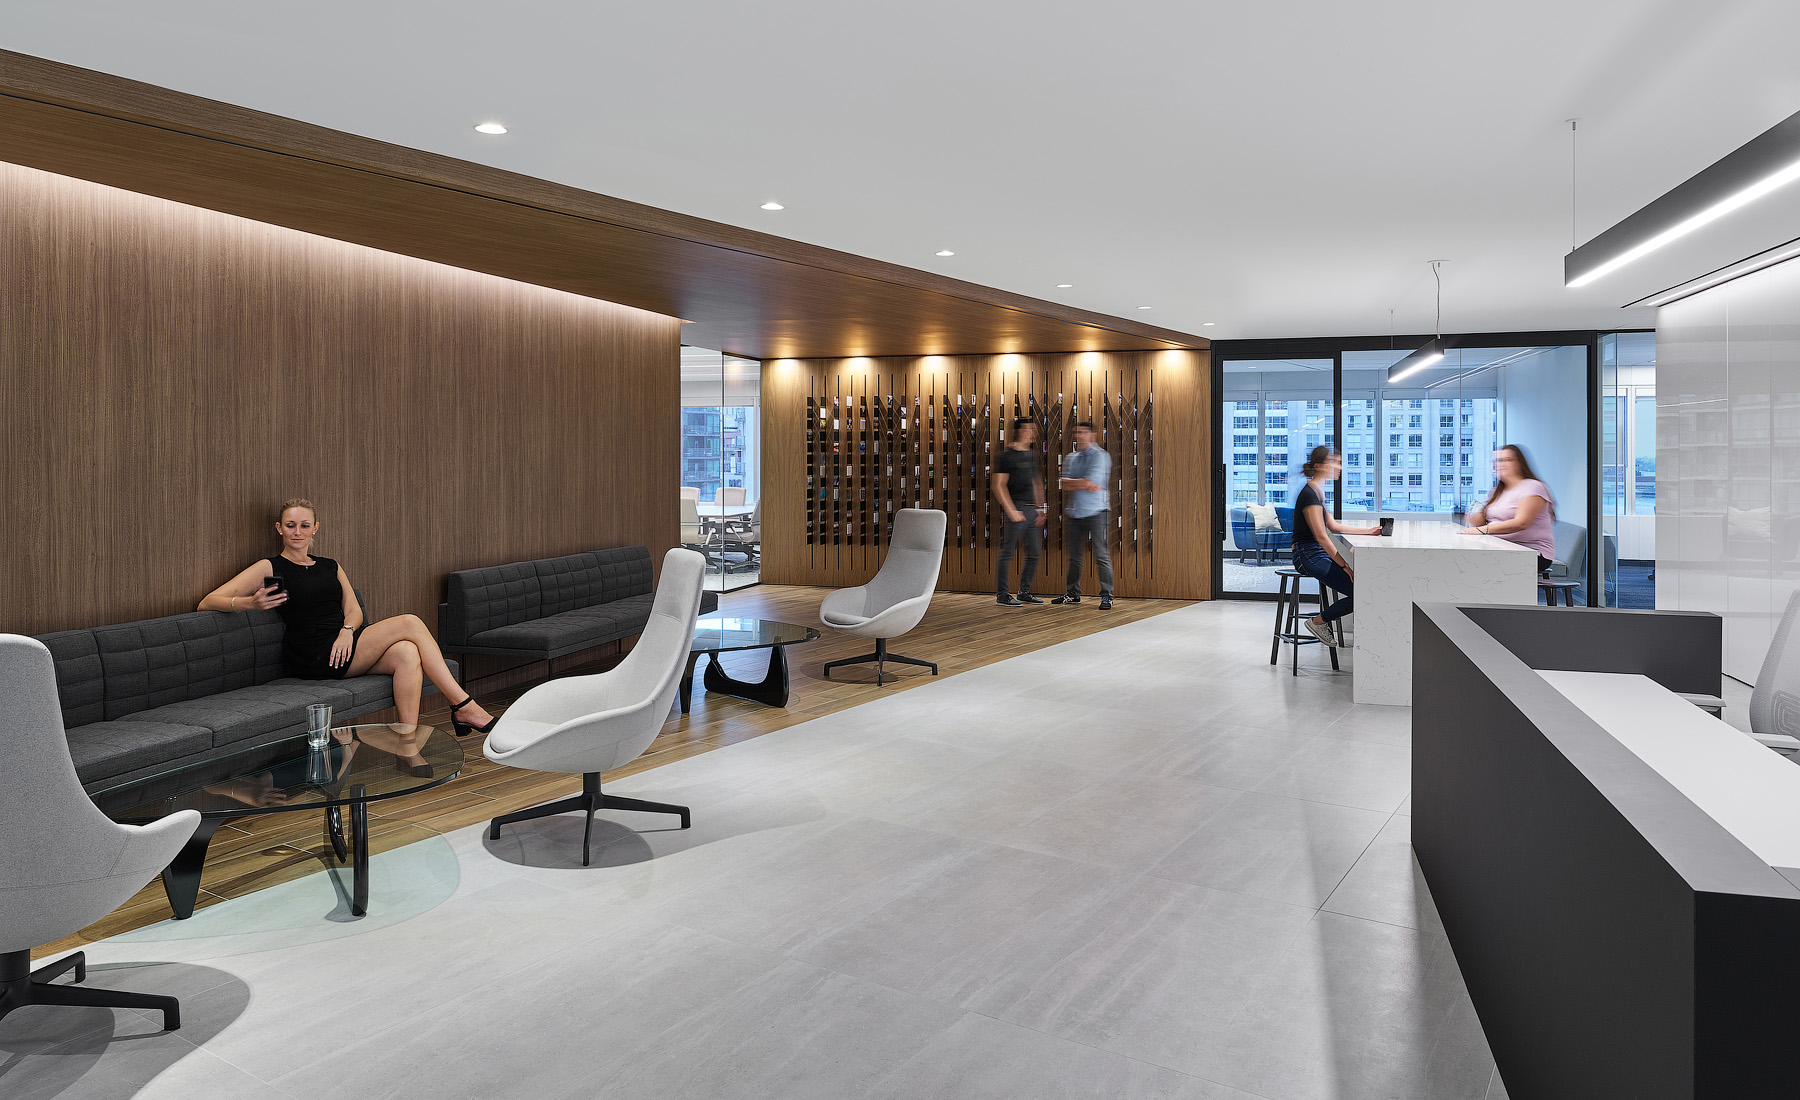 Optimus Toronto lobby with two desks and wood paneling